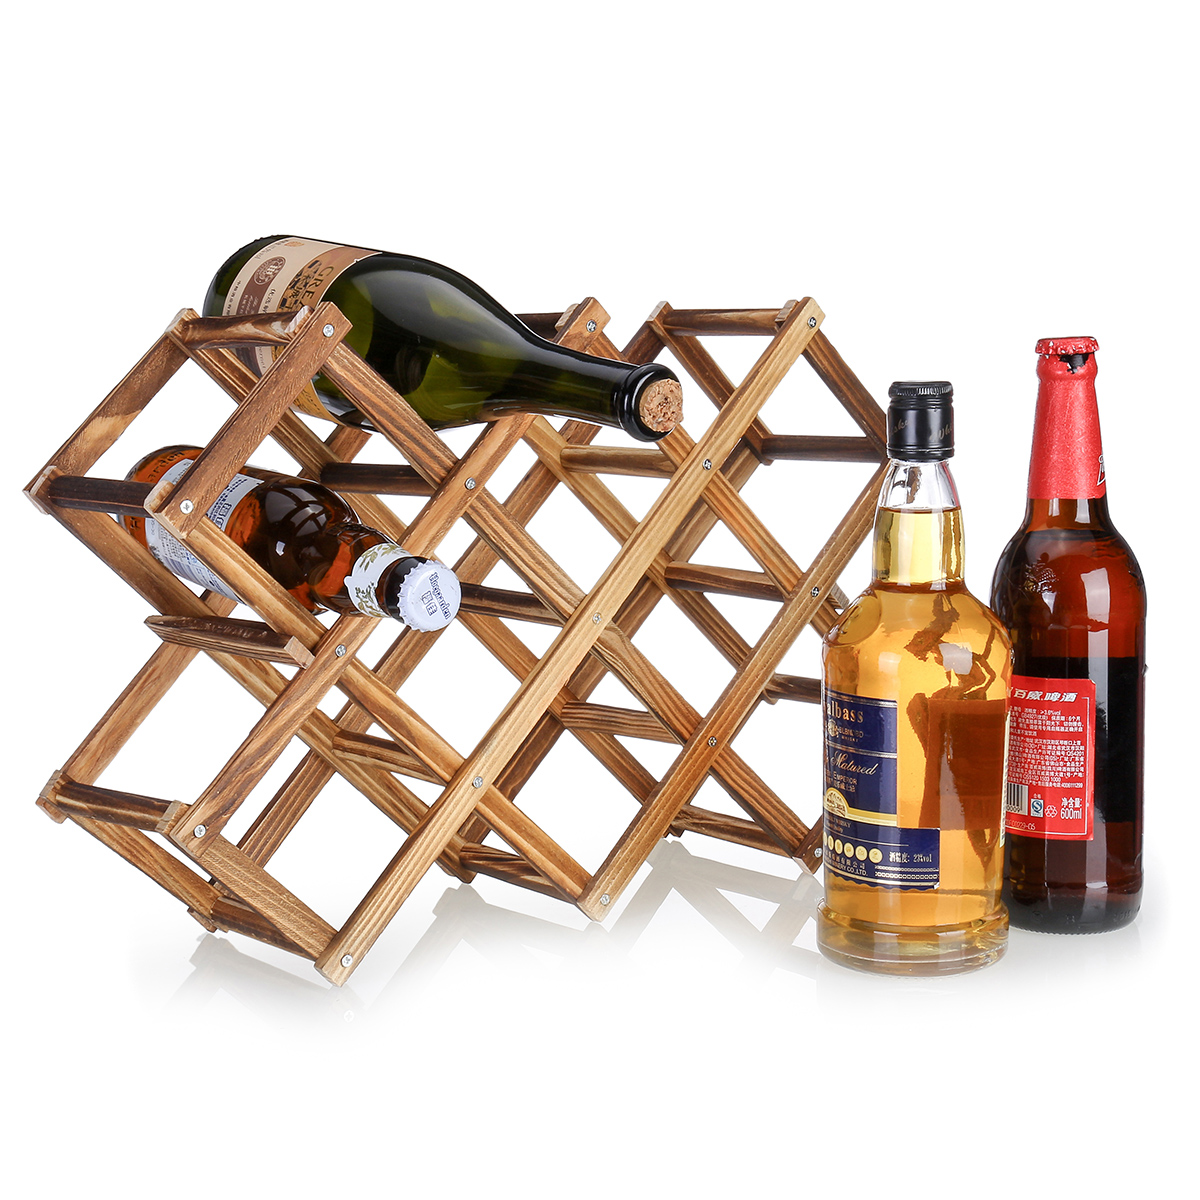 foldable wooden wine rack small wine holder storage table free standing wine rack for countertop home decor kitchen organizer carbonized wood color